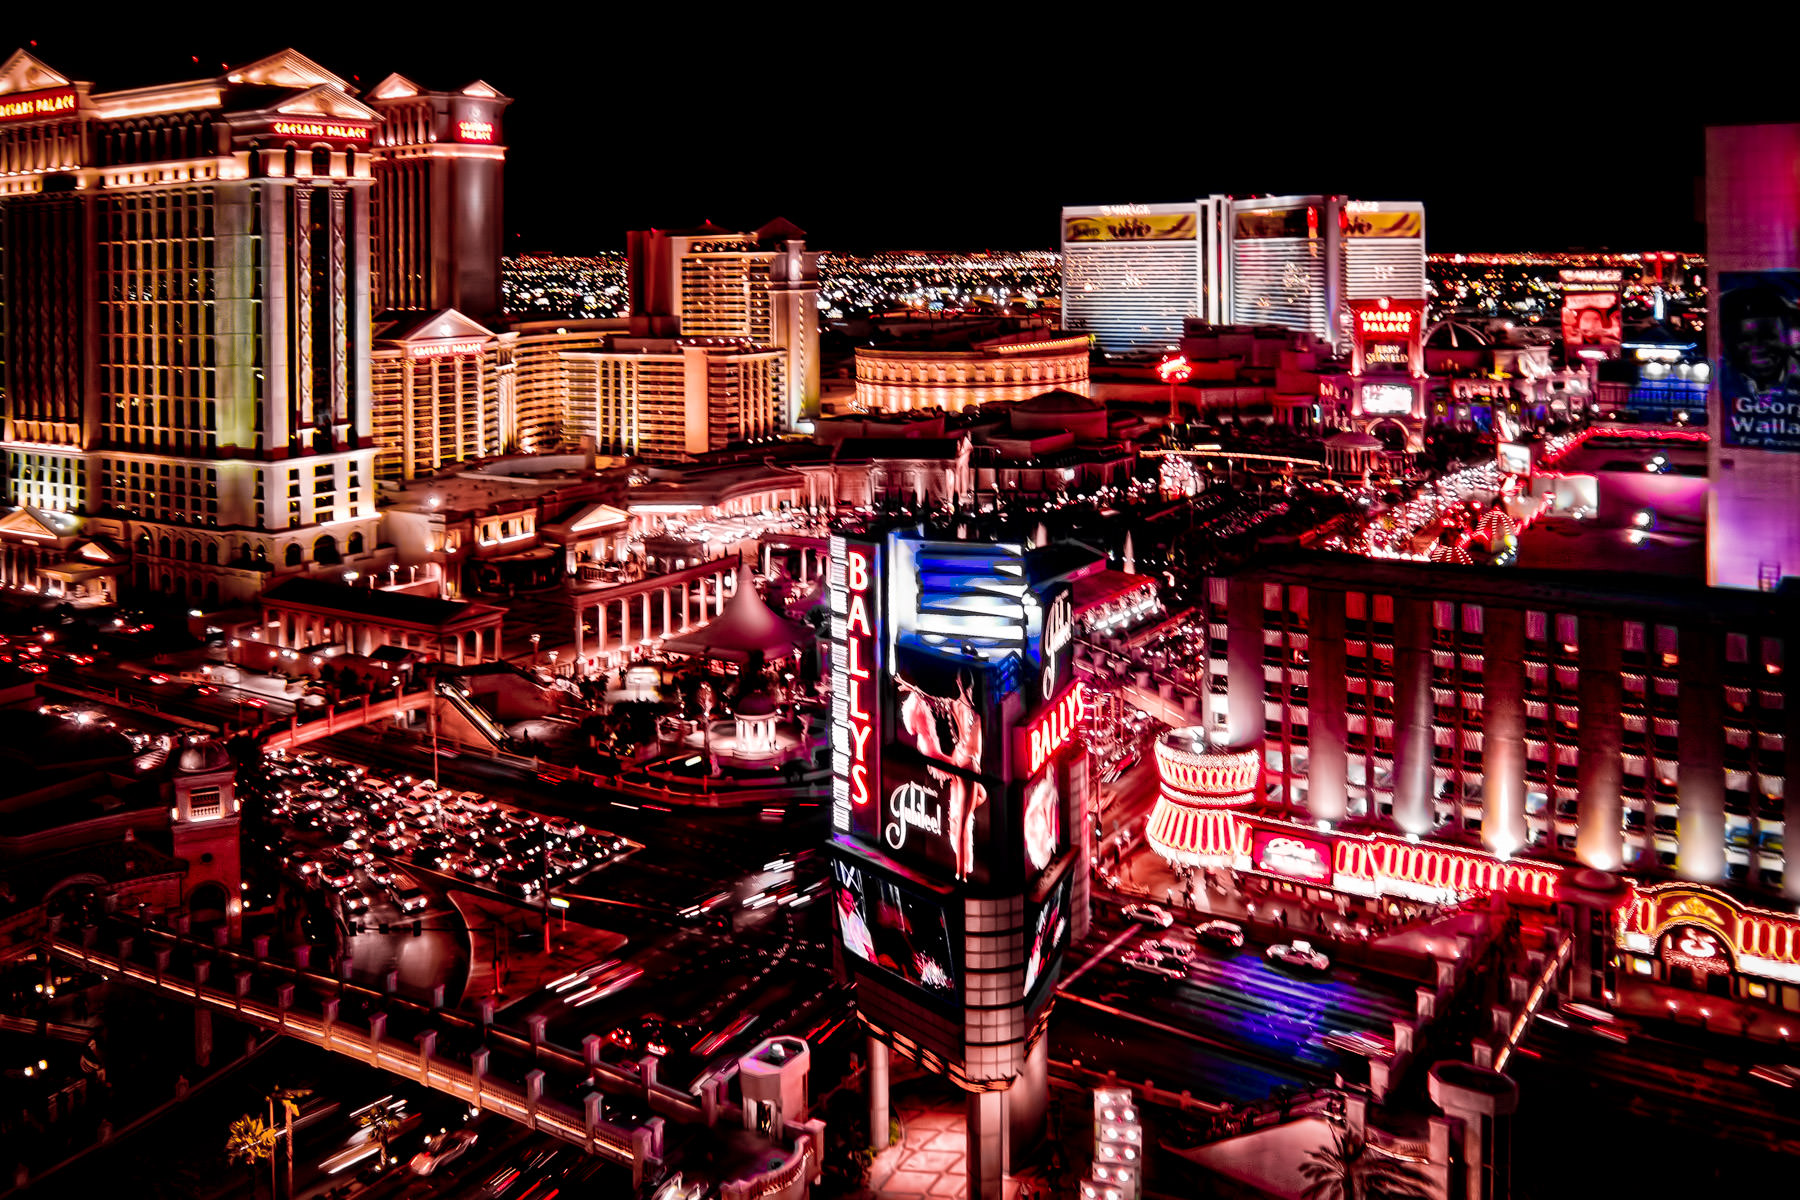 The intersection of Flamingo Road and the Las Vegas Strip (Las Vegas Boulevard) as seen from Ballys at night.